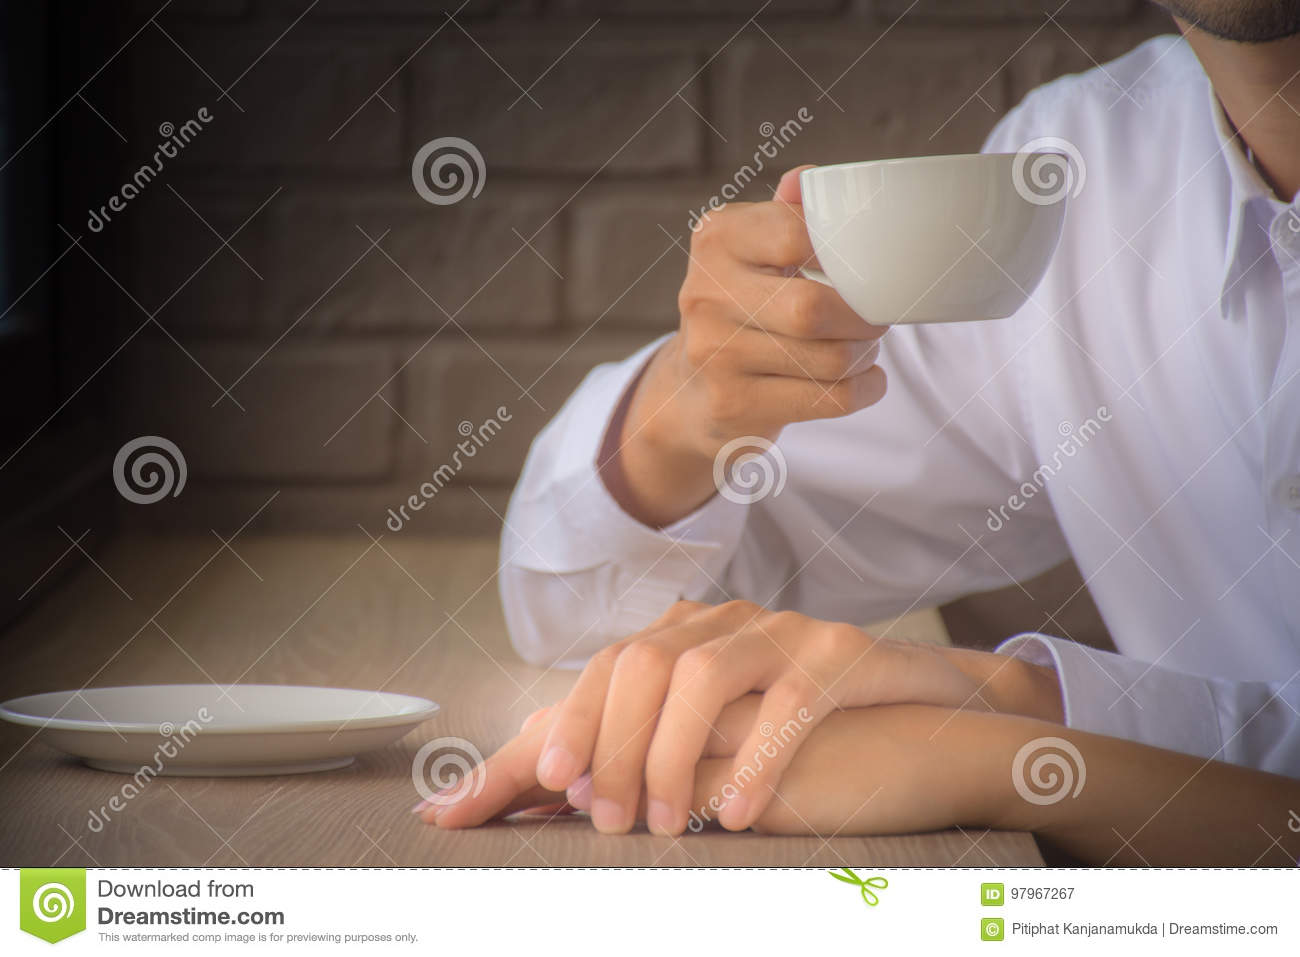 Lovers are drinking coffee While holding hands